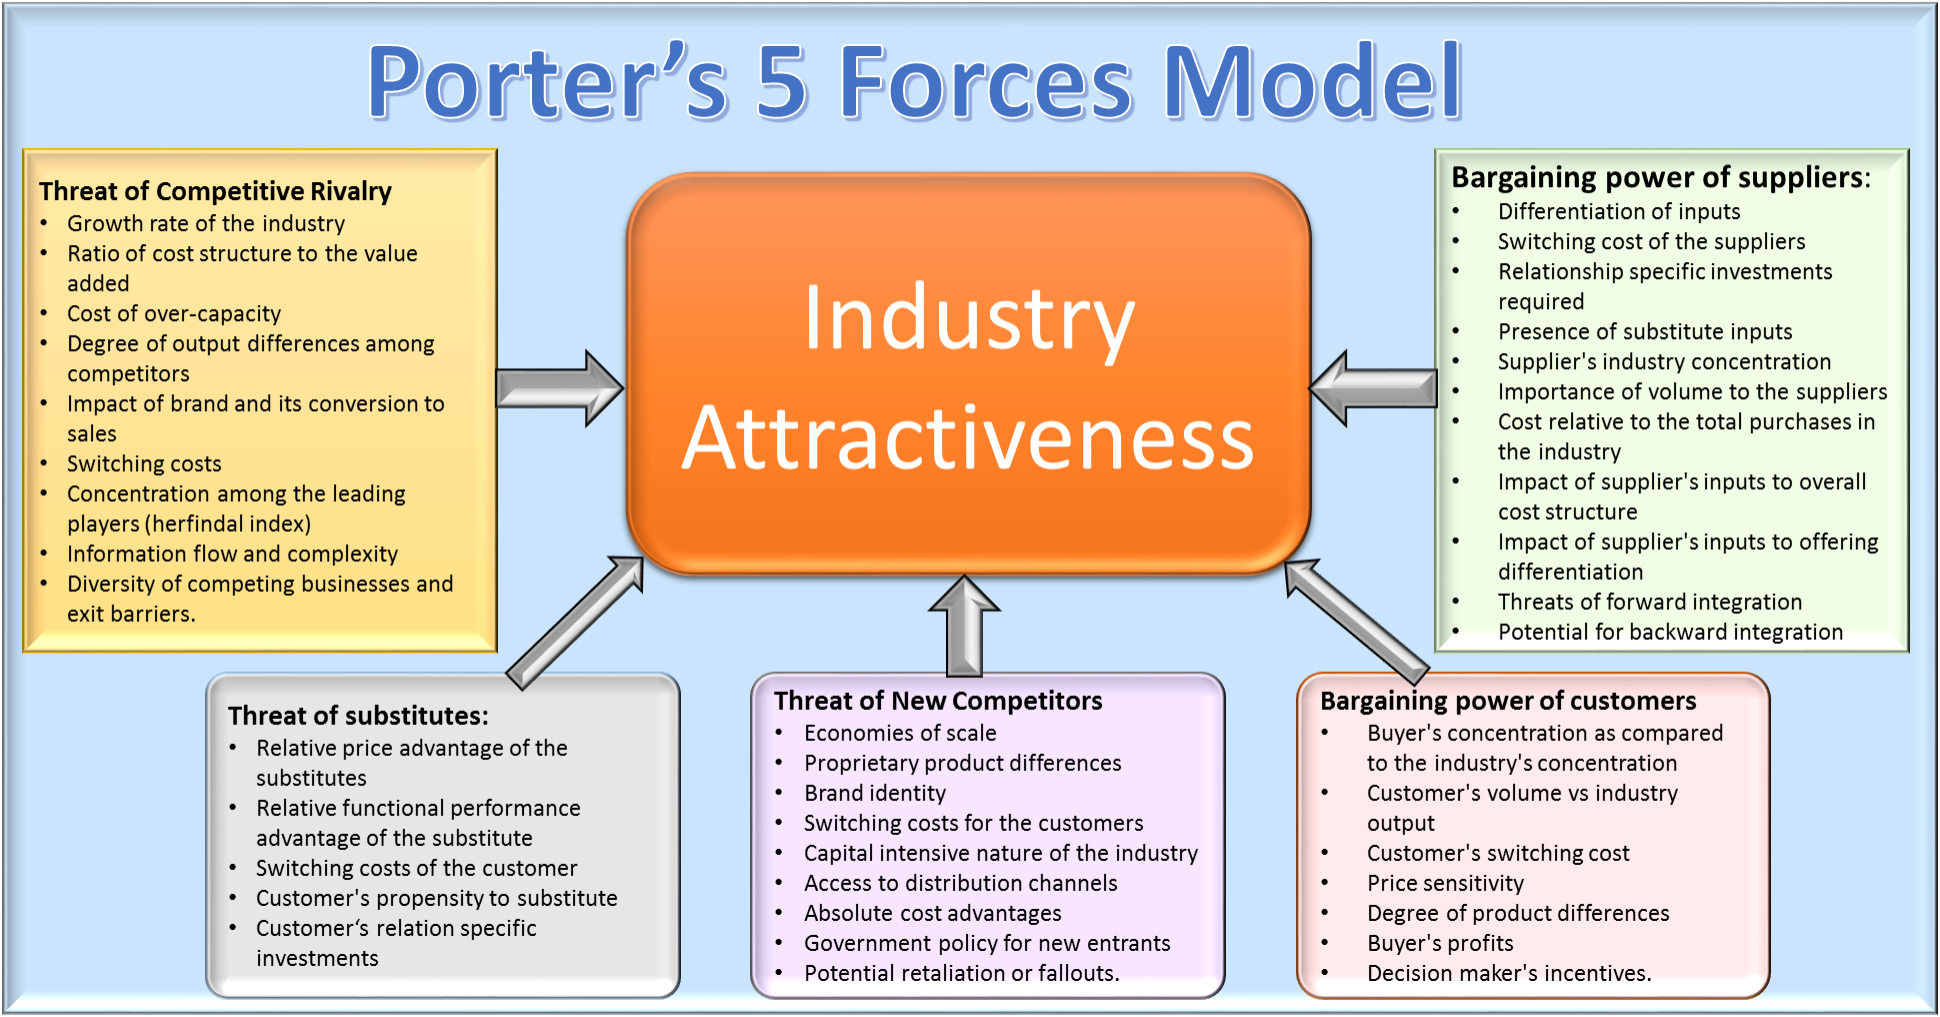 porters 5 force analysis Porter's 5 forces analysis is a framework for the industry analysis and business strategy development developed by michael e porter of harvard business school in.